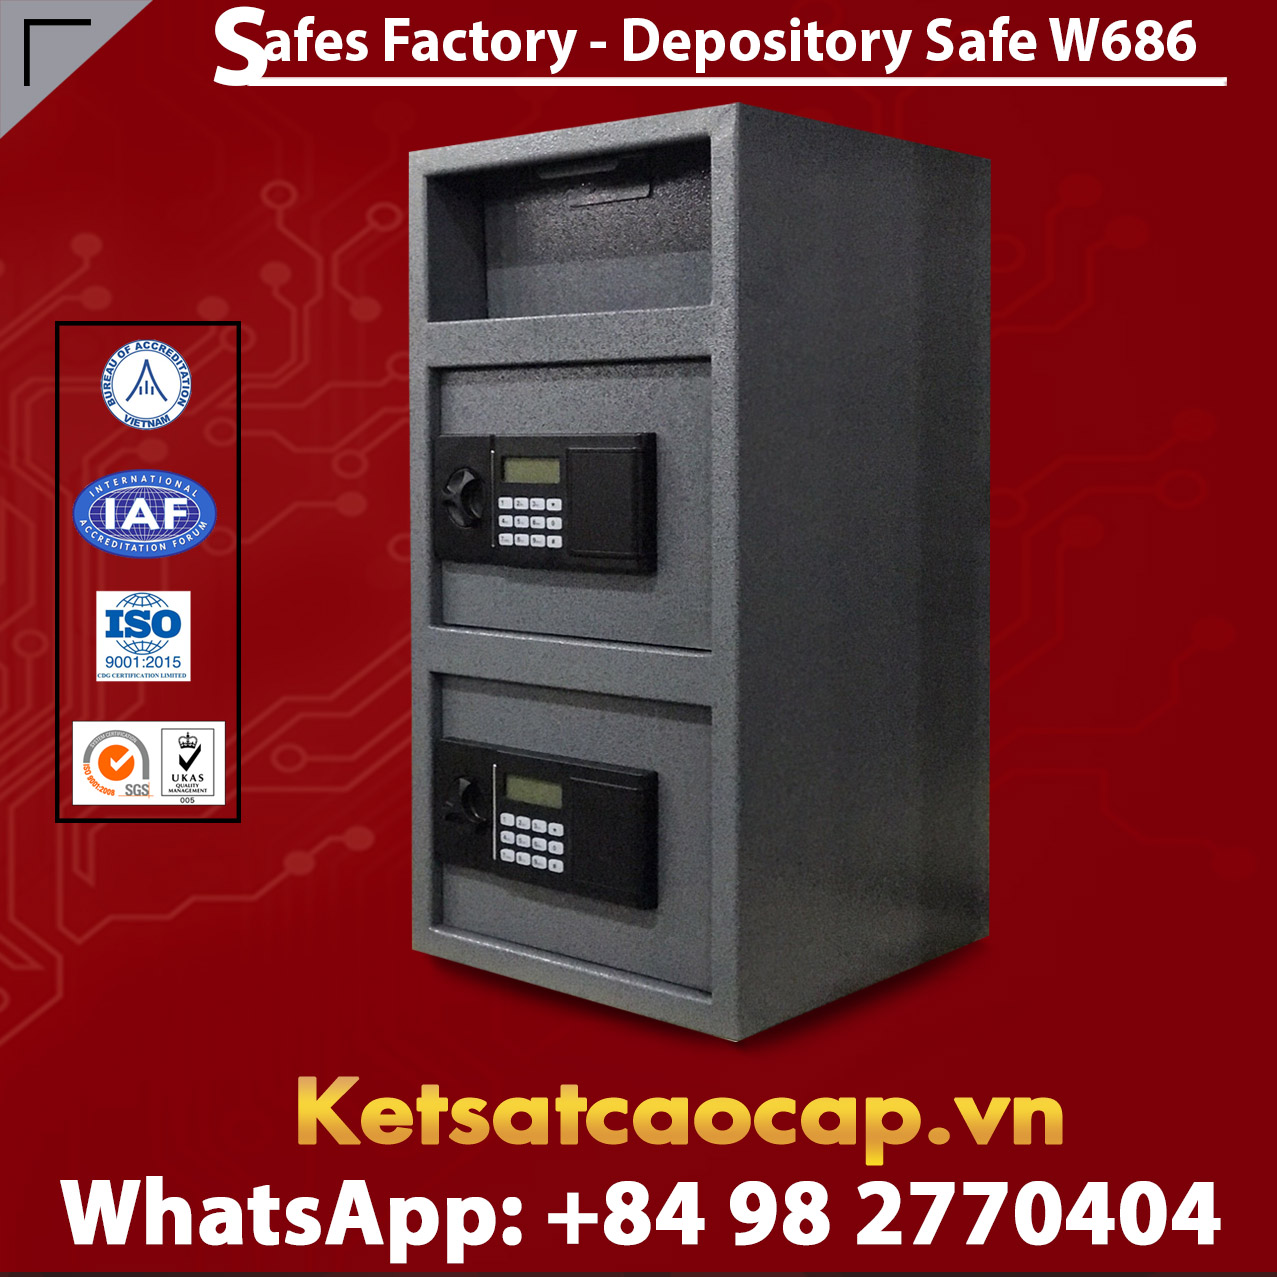 High quality Depository Safes W686 Gray